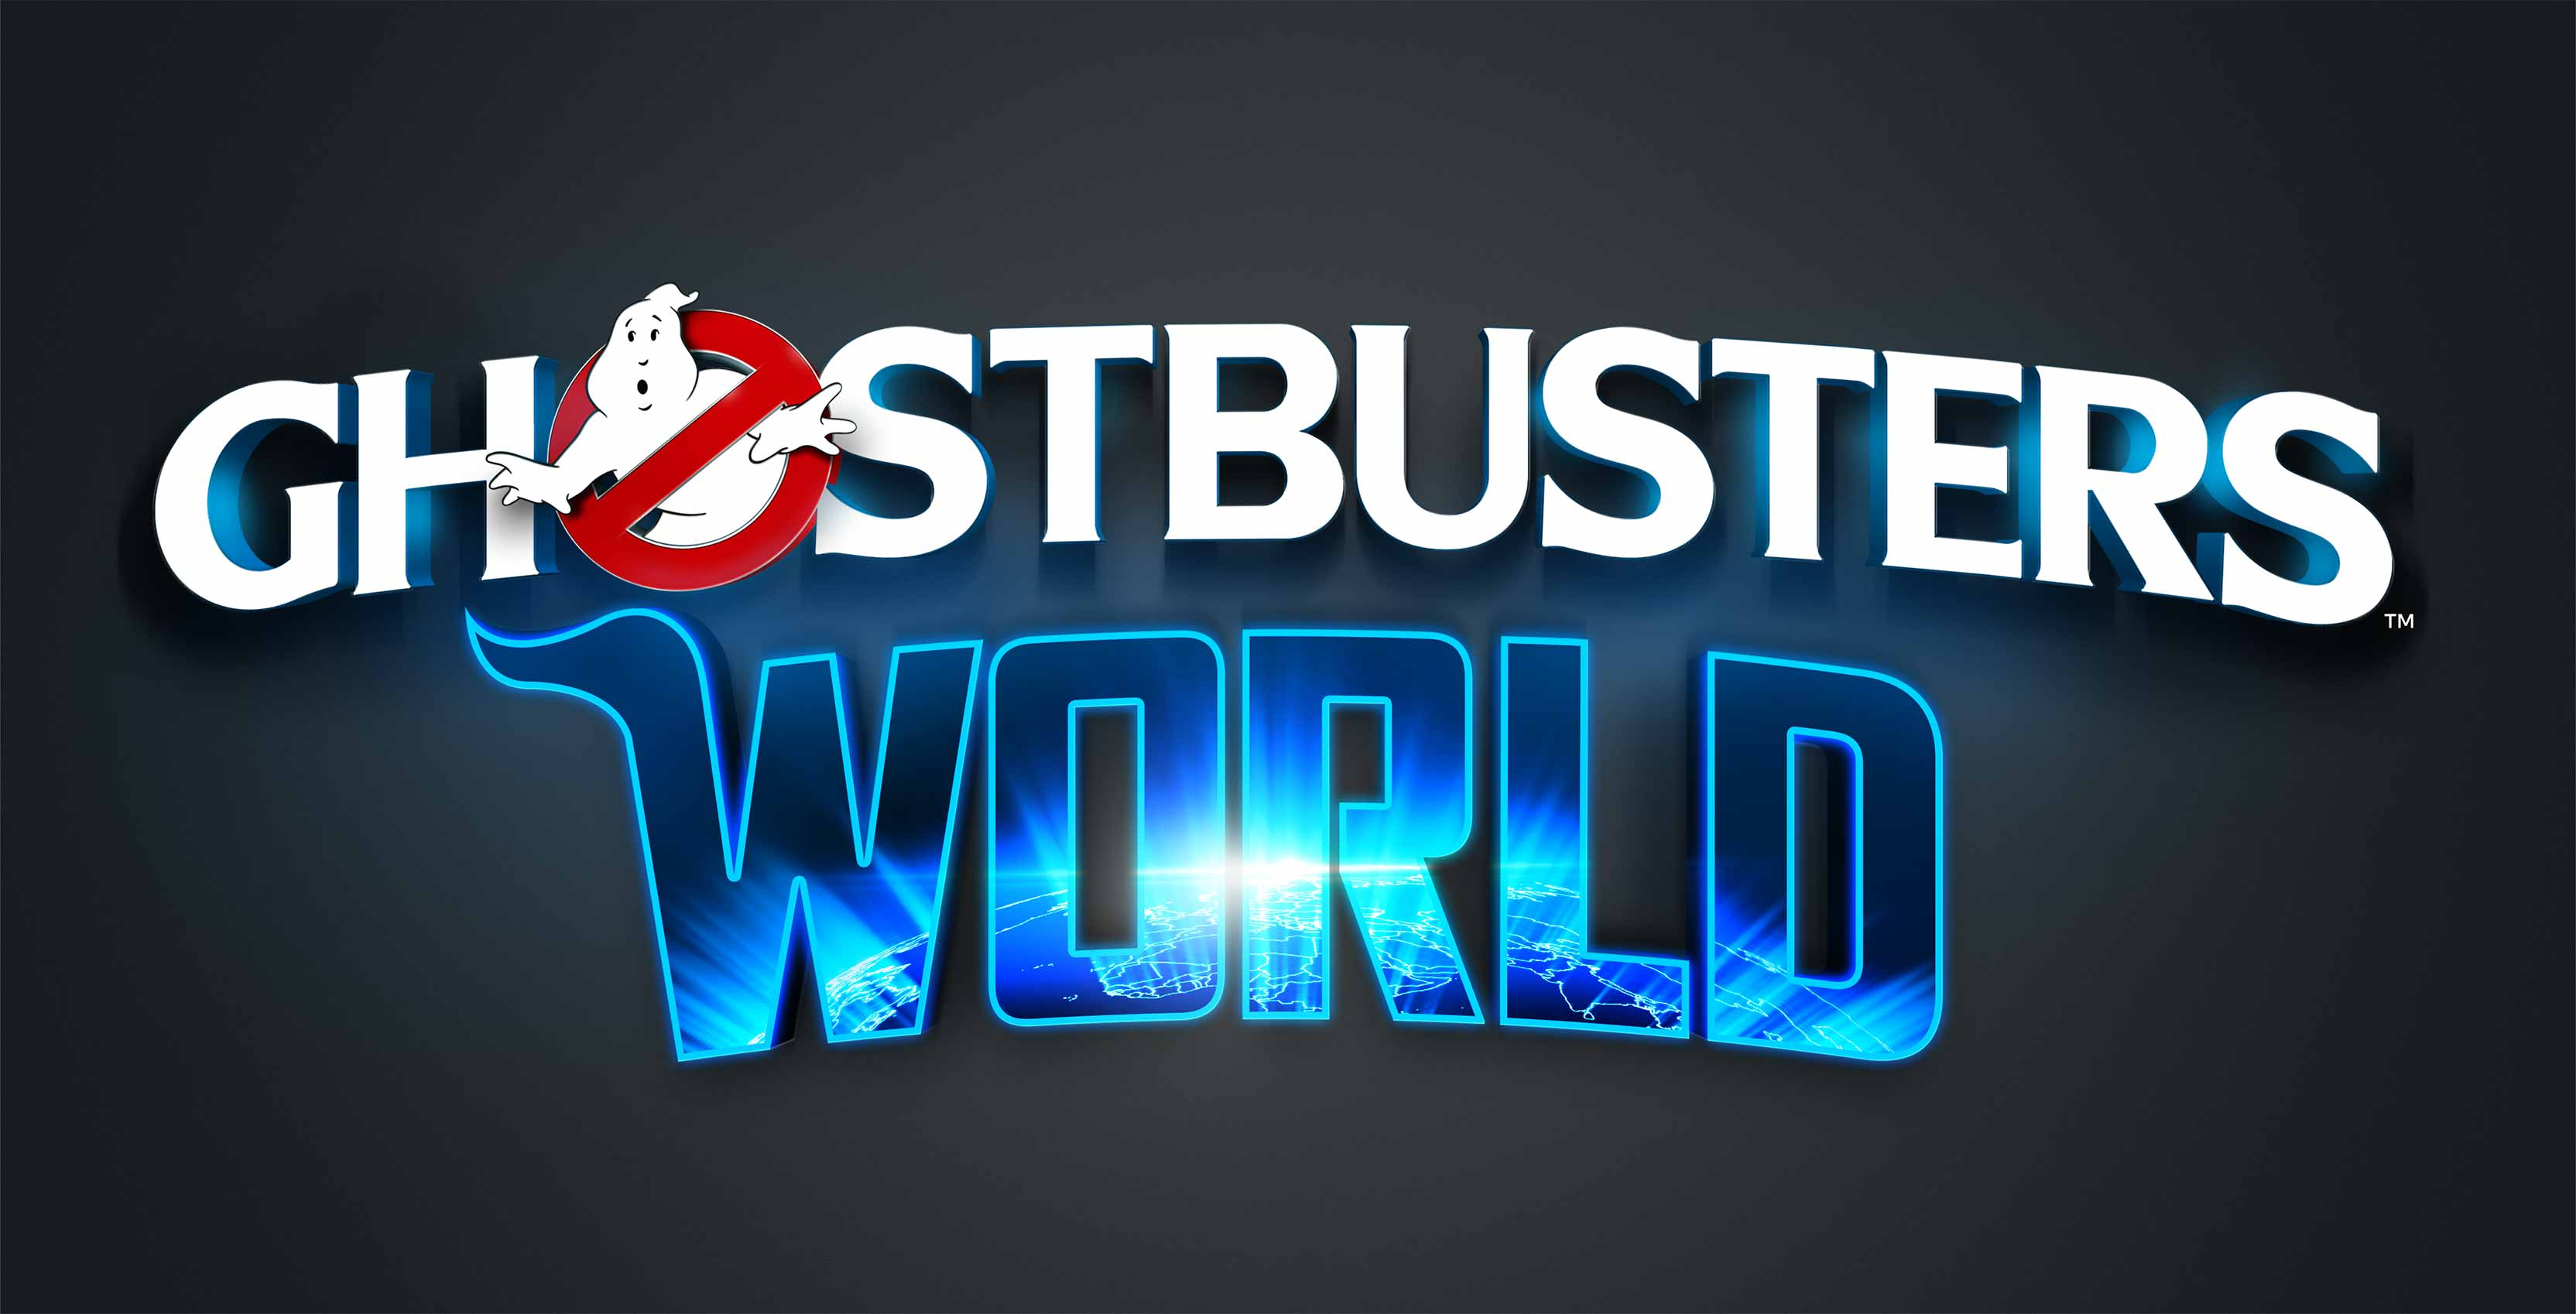 Ghostbusters World mobile game logo